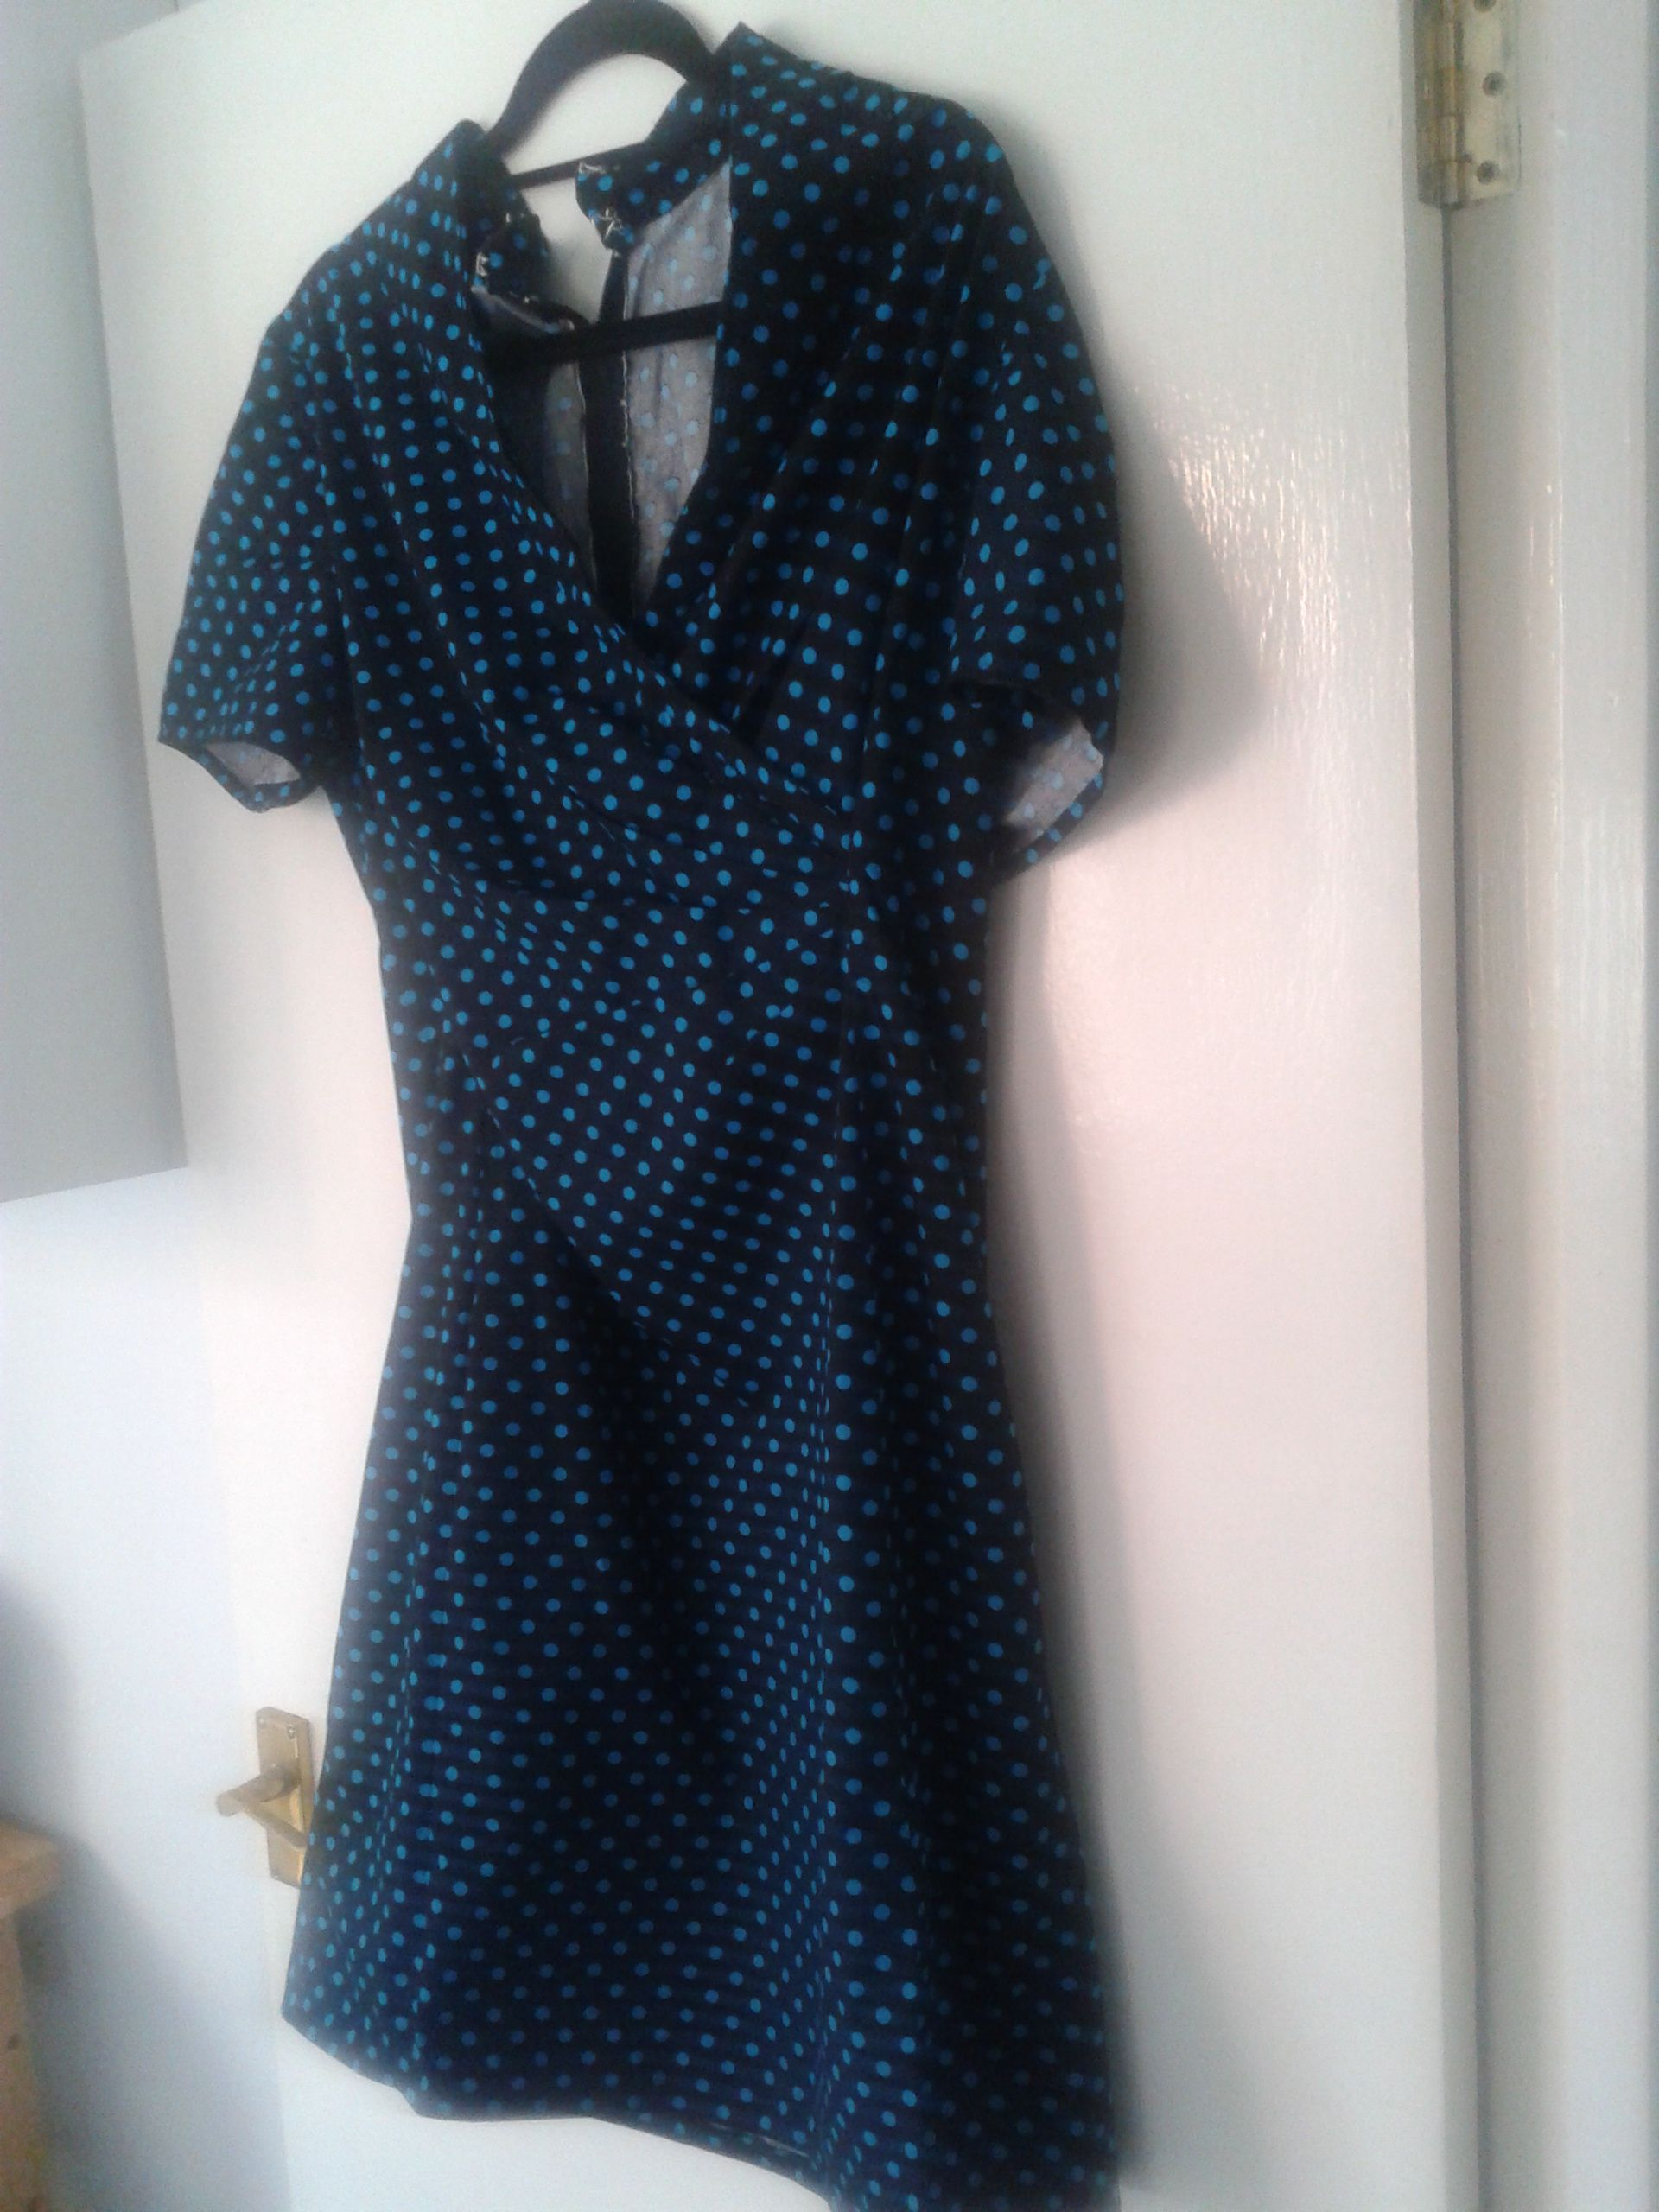 Sewing - Dress - Black with blue polka dots (Butterick B5849). I wore it to Mike's gig. As the dress has a slight forties feel with this fabric, if I made this again I would make the skirt longer and narrower, with the split at the back. Very happy with it though.